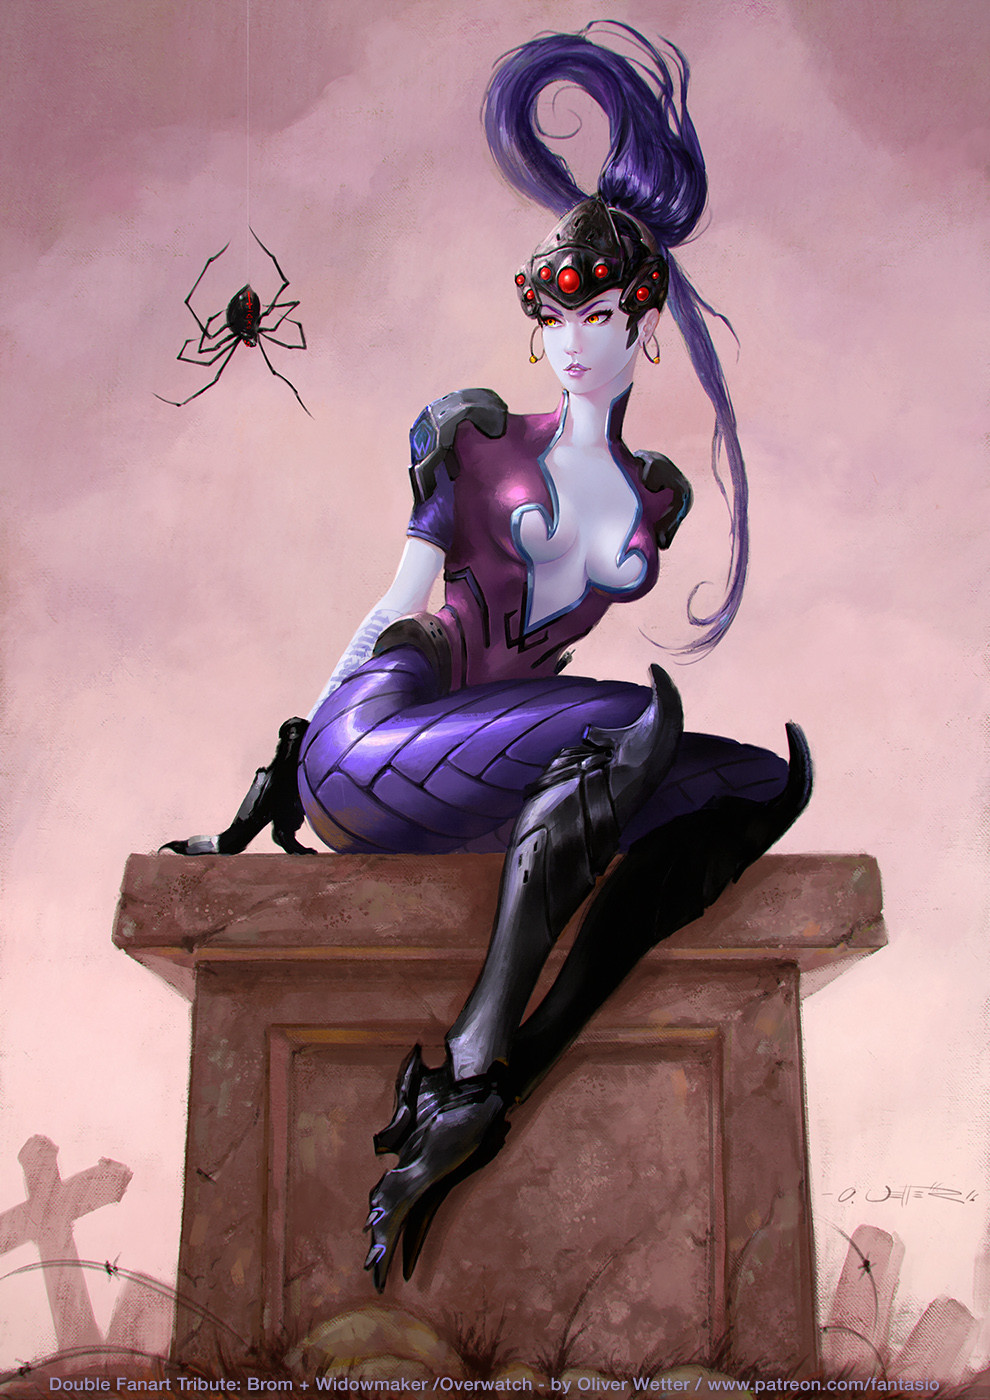 Miss 'Widowmaker' Muffet - Overwatch + Brom Double Fanart